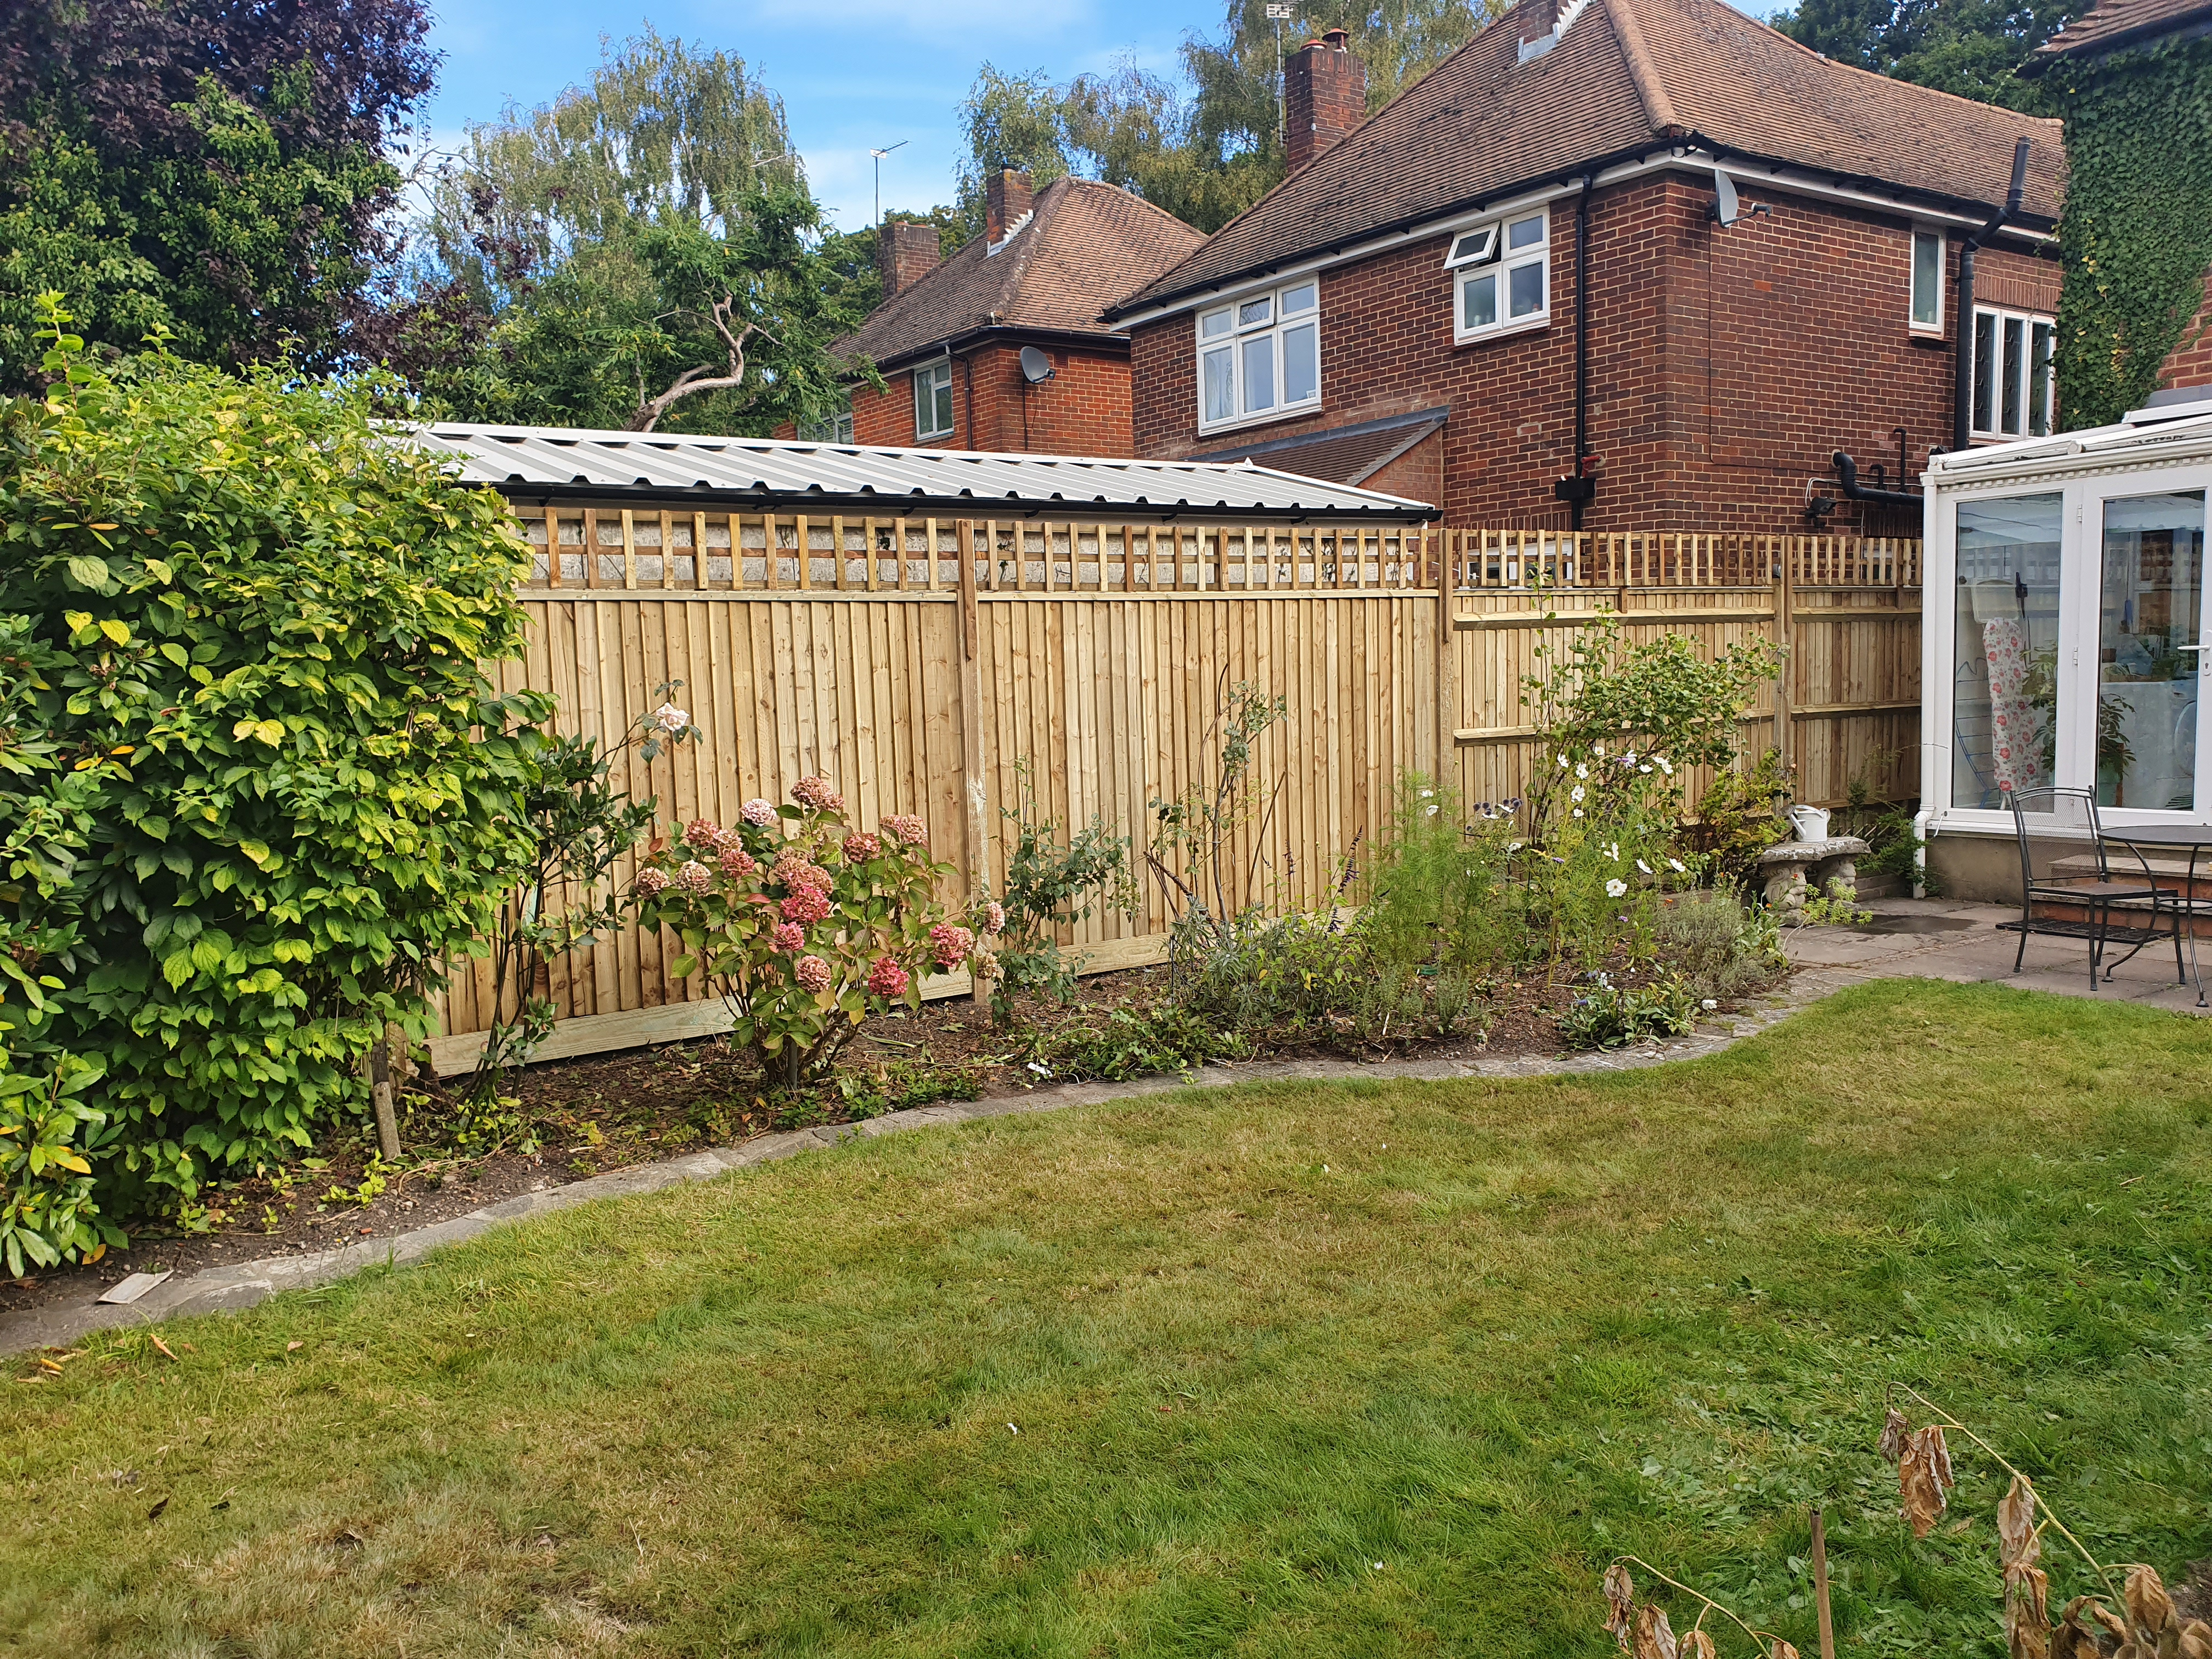 6ft closeboard, on wooden posts and wooden gravelboards. 1ft square trellis installed on top